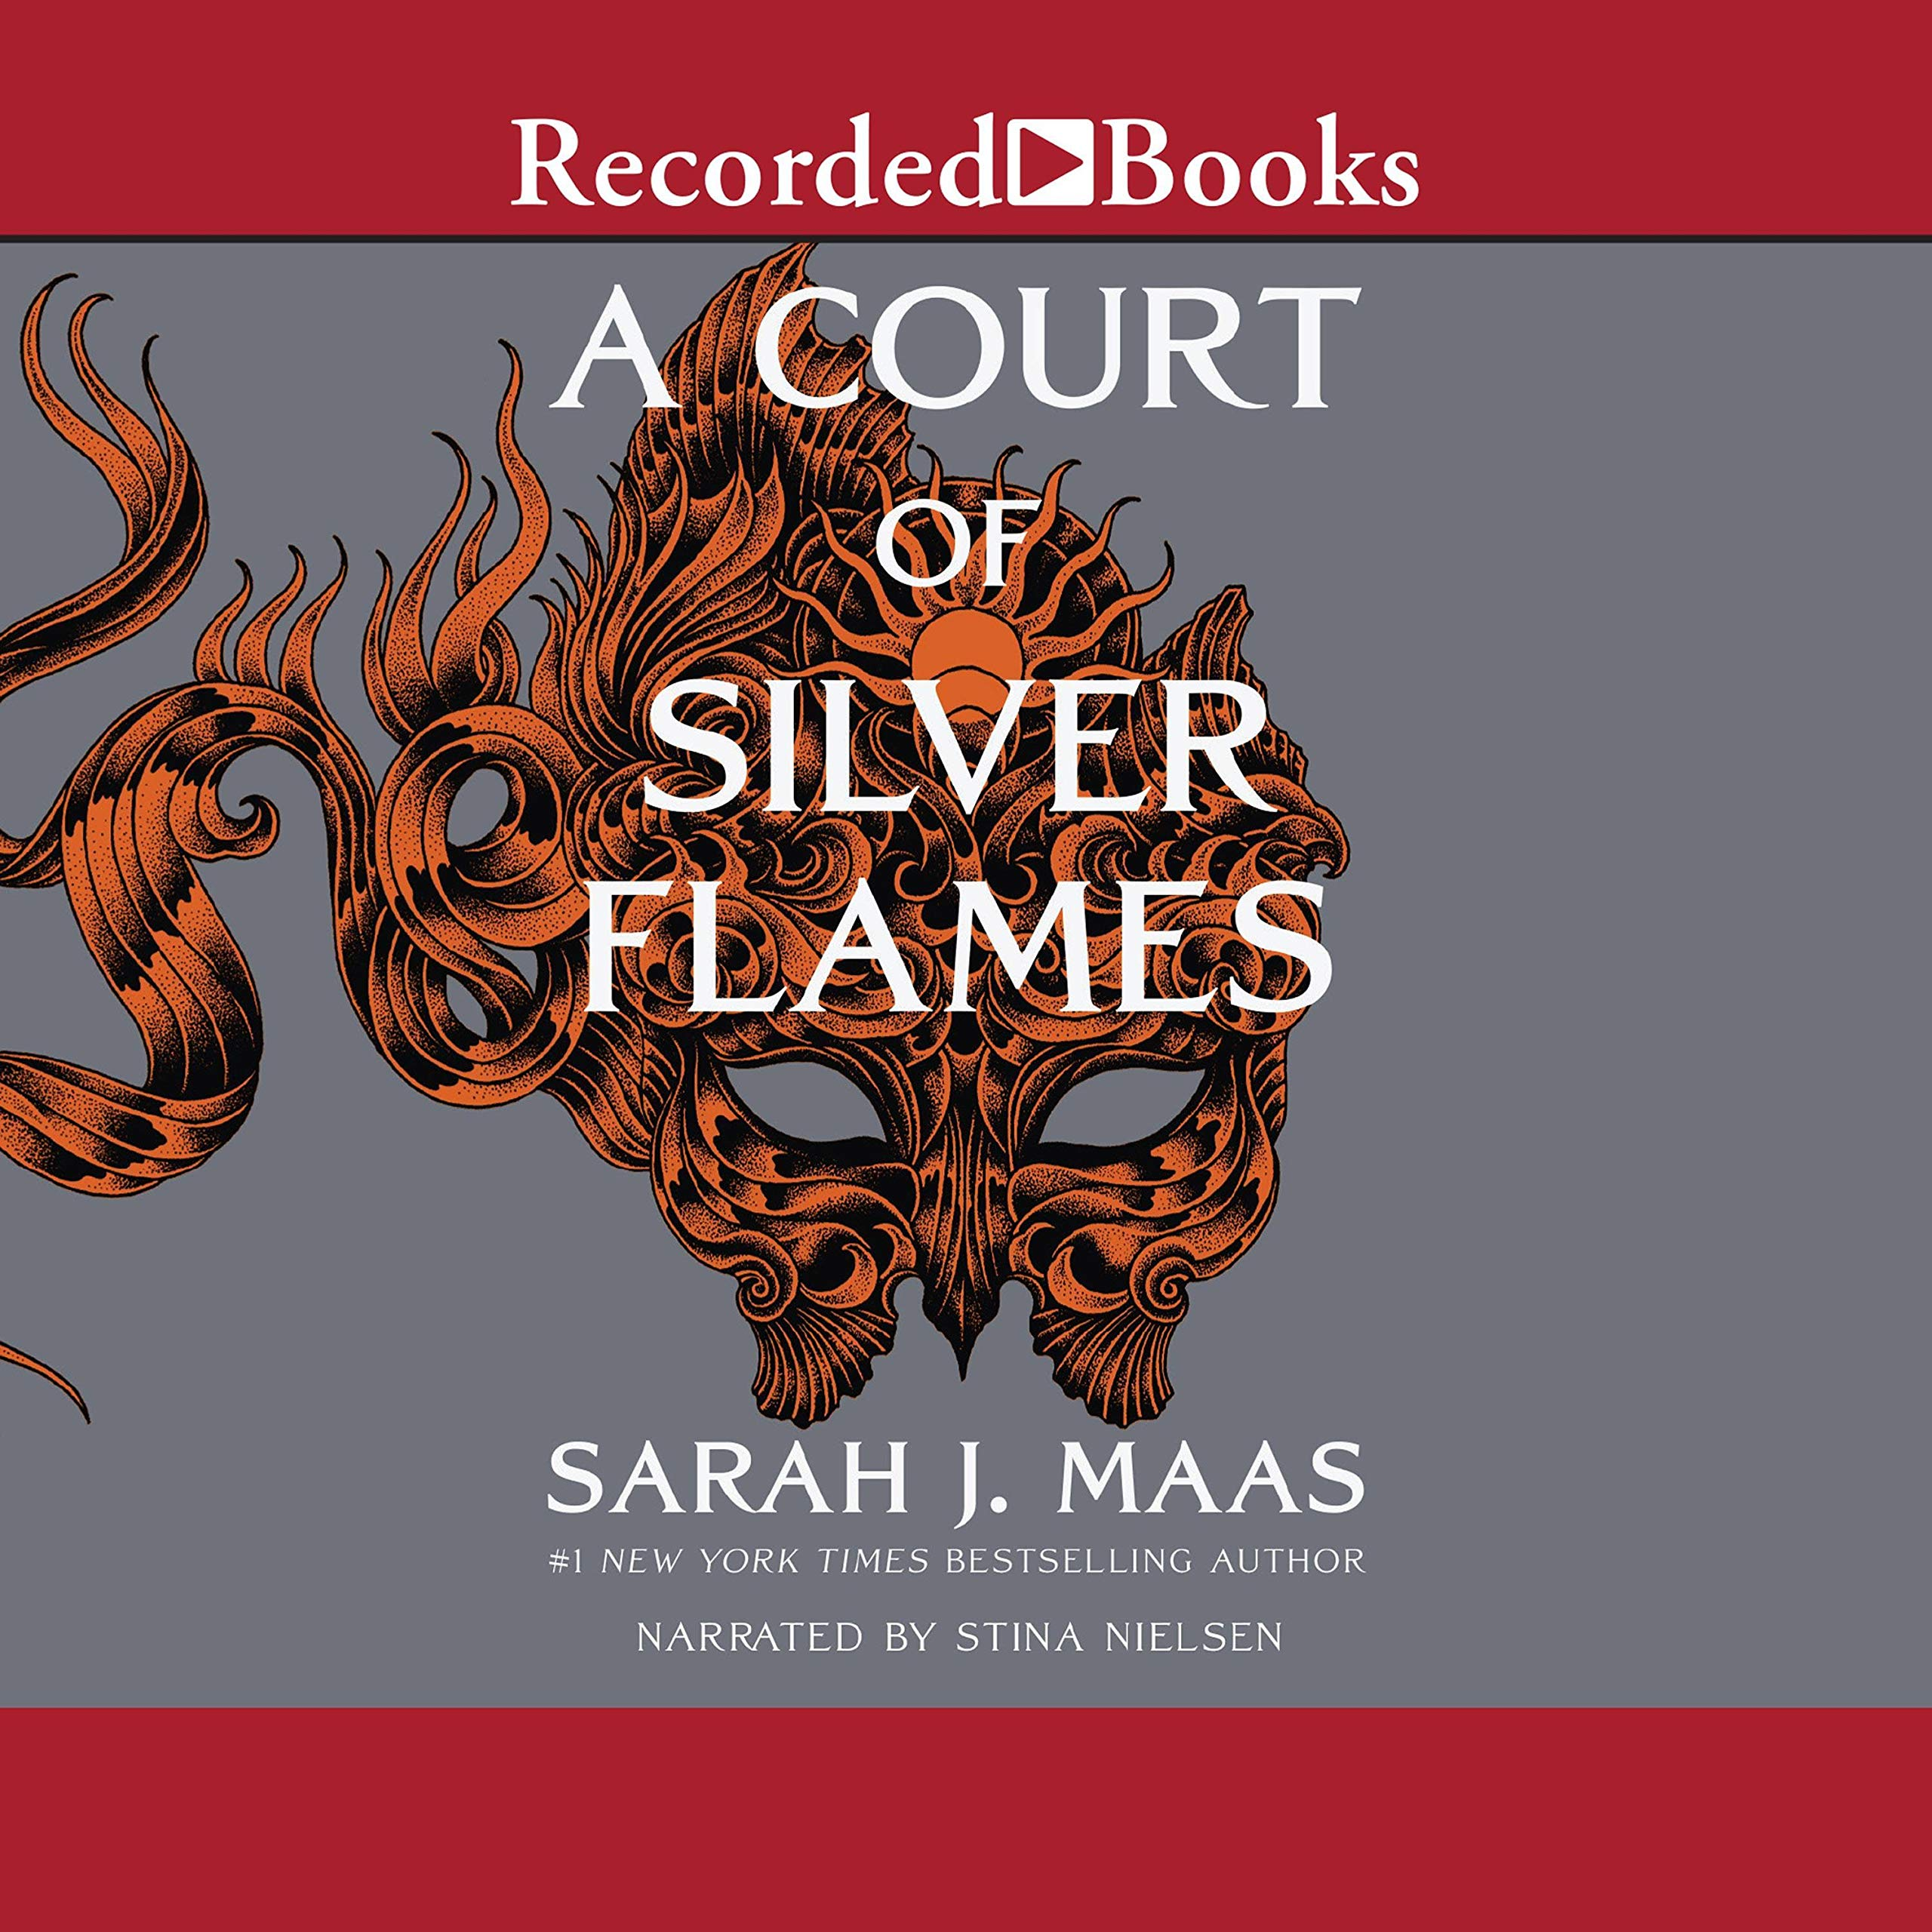 Cover image of A Court of Silver Flames by Sarah J. Maas